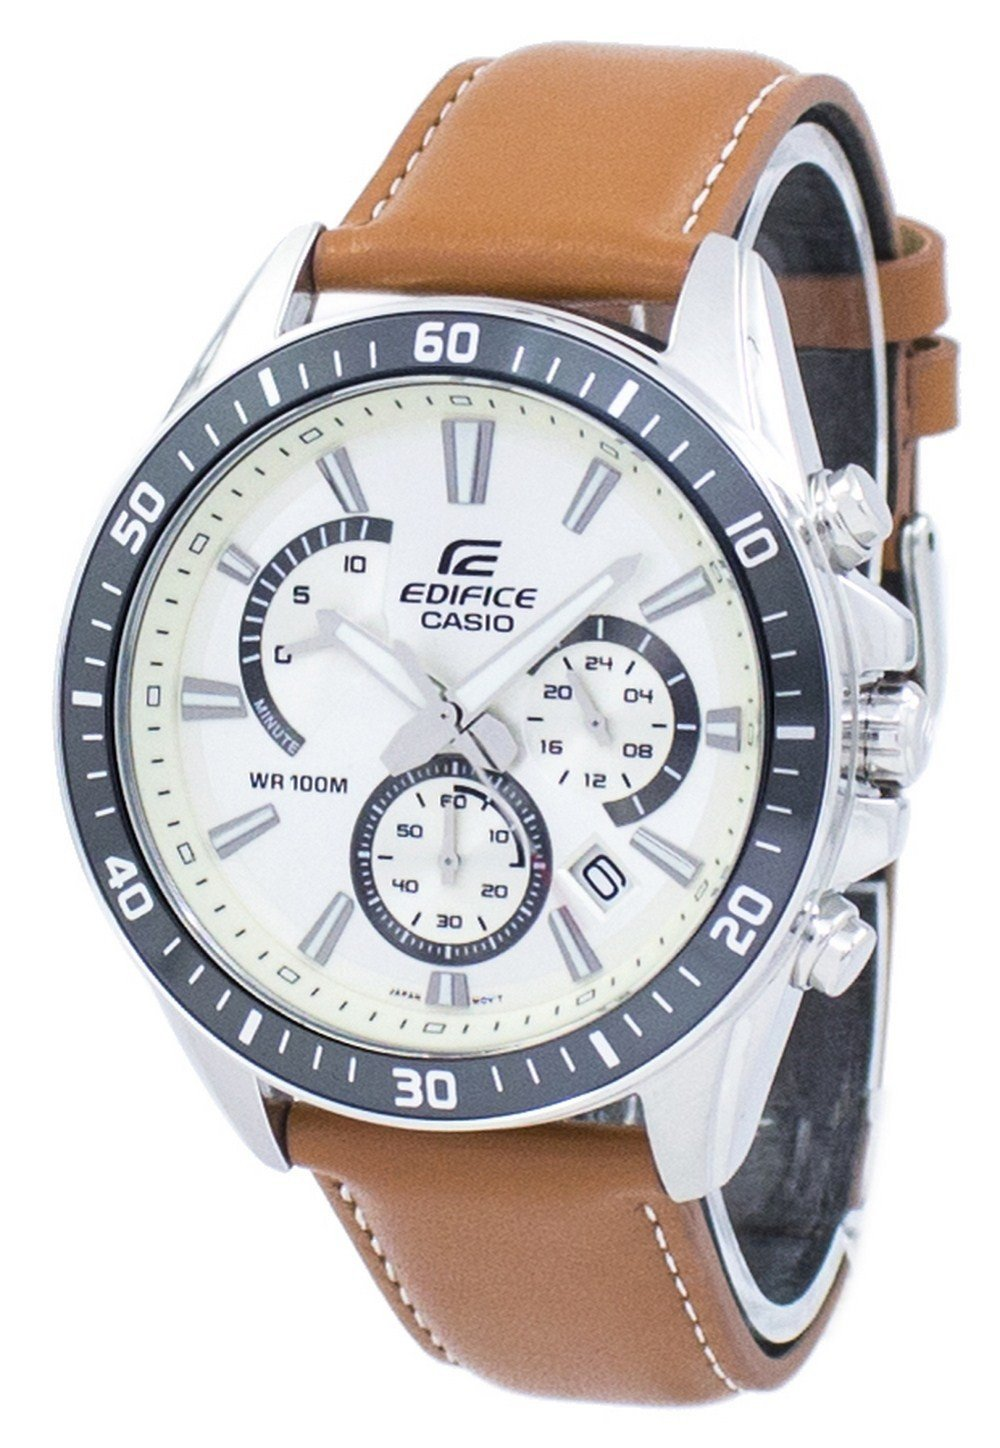 Casio Edifice Chronograph Quartz EFR-552L-7AV EFR552L-7AV Men's Watch